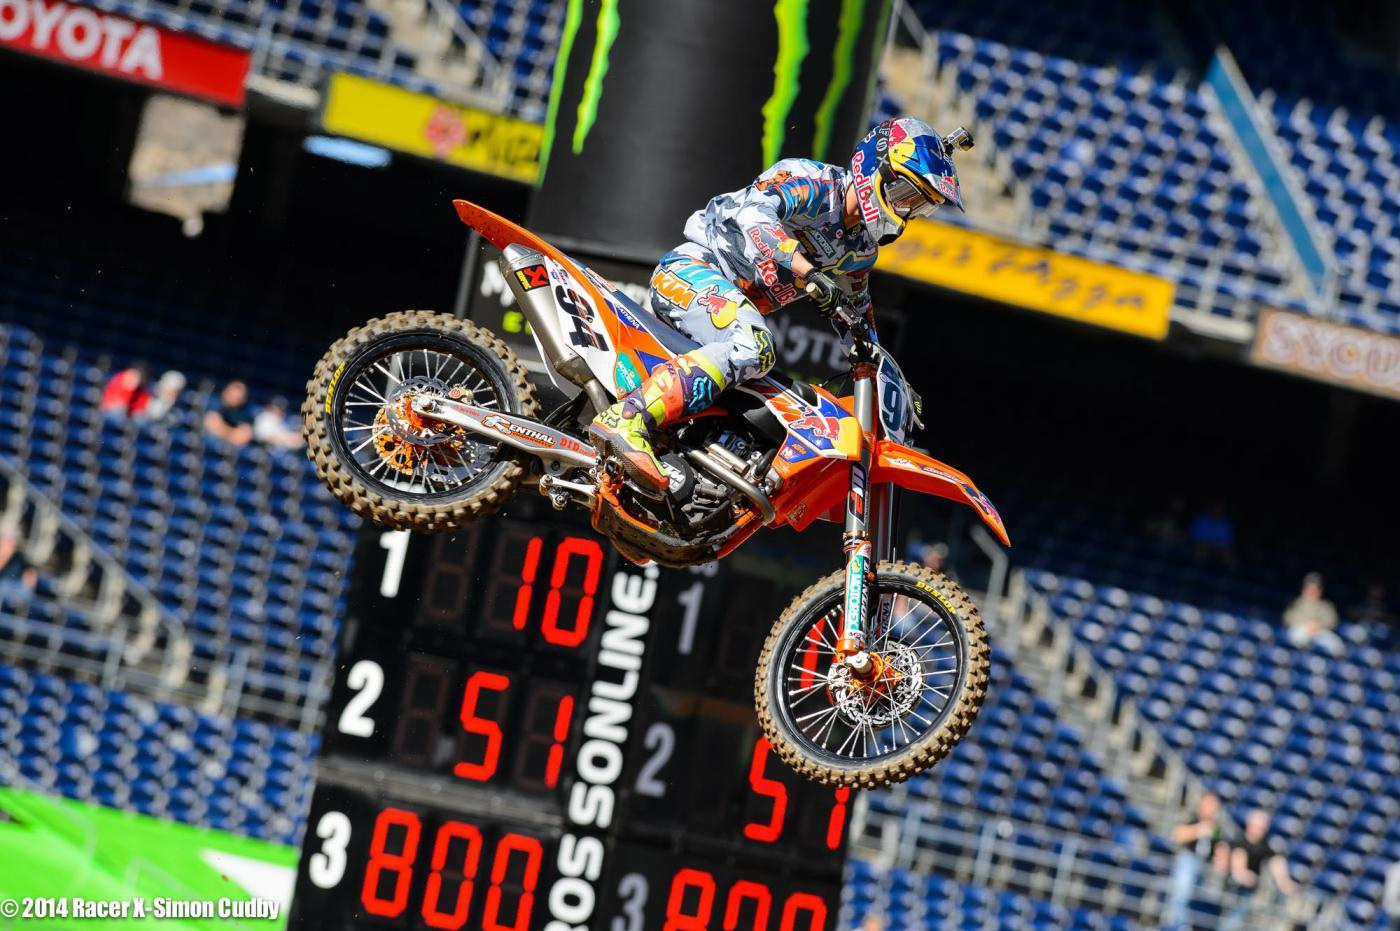 Roczen was fastest in the first timed practice session.Photo: Cudby